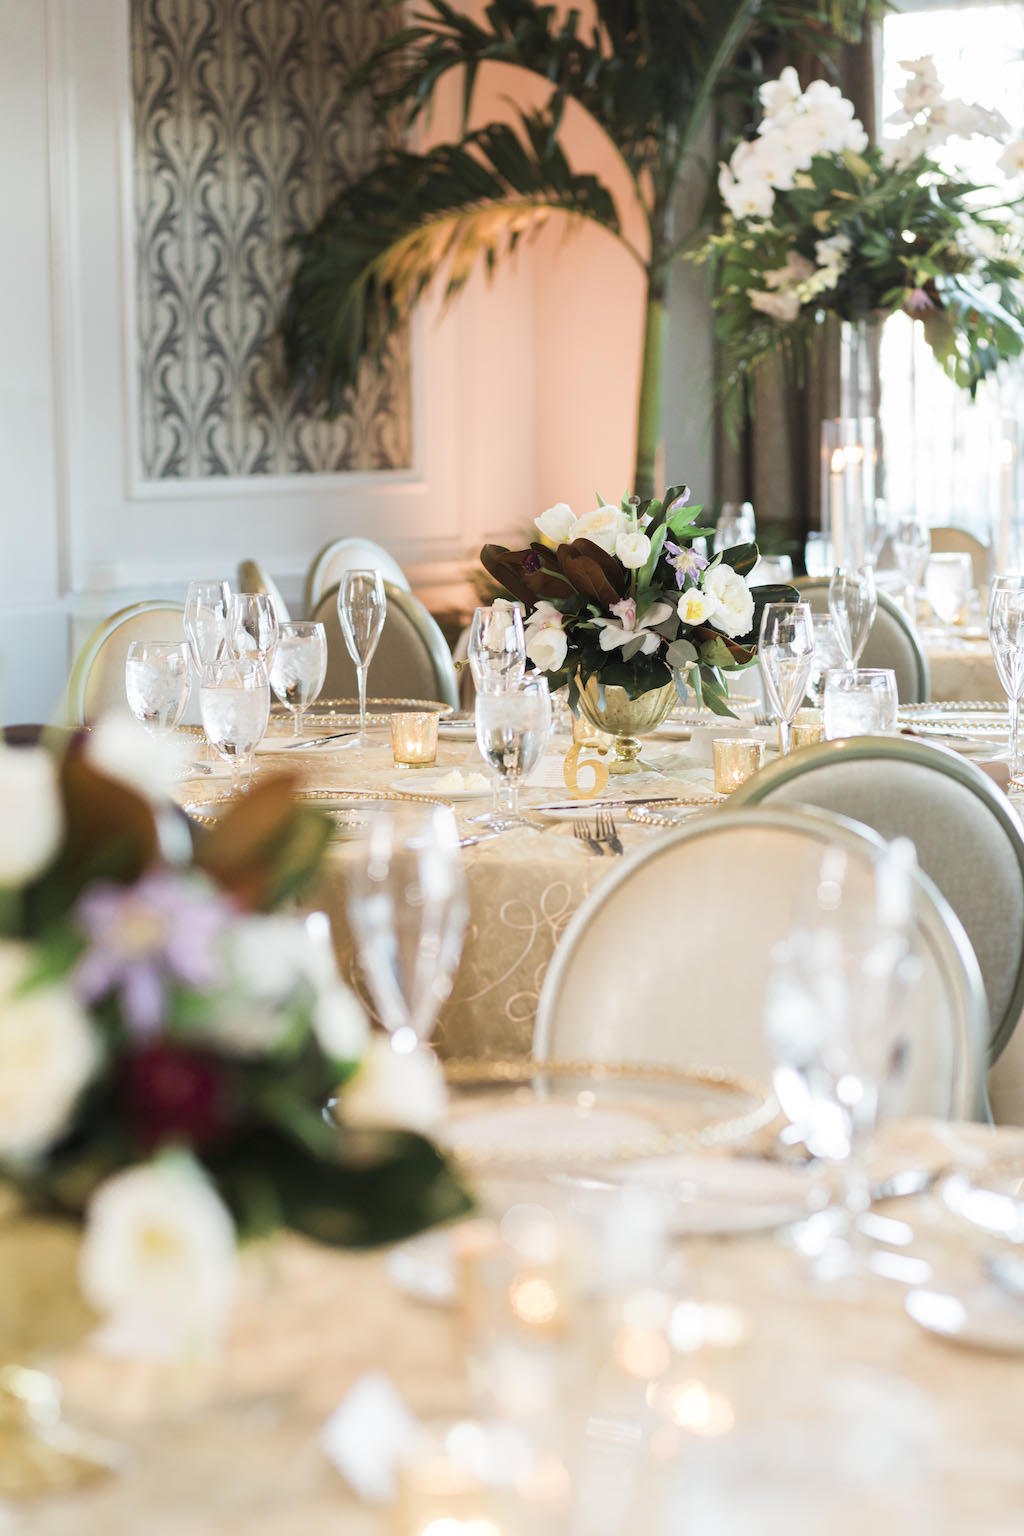 Classic Wedding Reception Decor, Round Tables with Gold Tablecloths, Mix and Match Low and Tall White, Dark Purple, Greenery Floral Centerpieces in Gold Vases